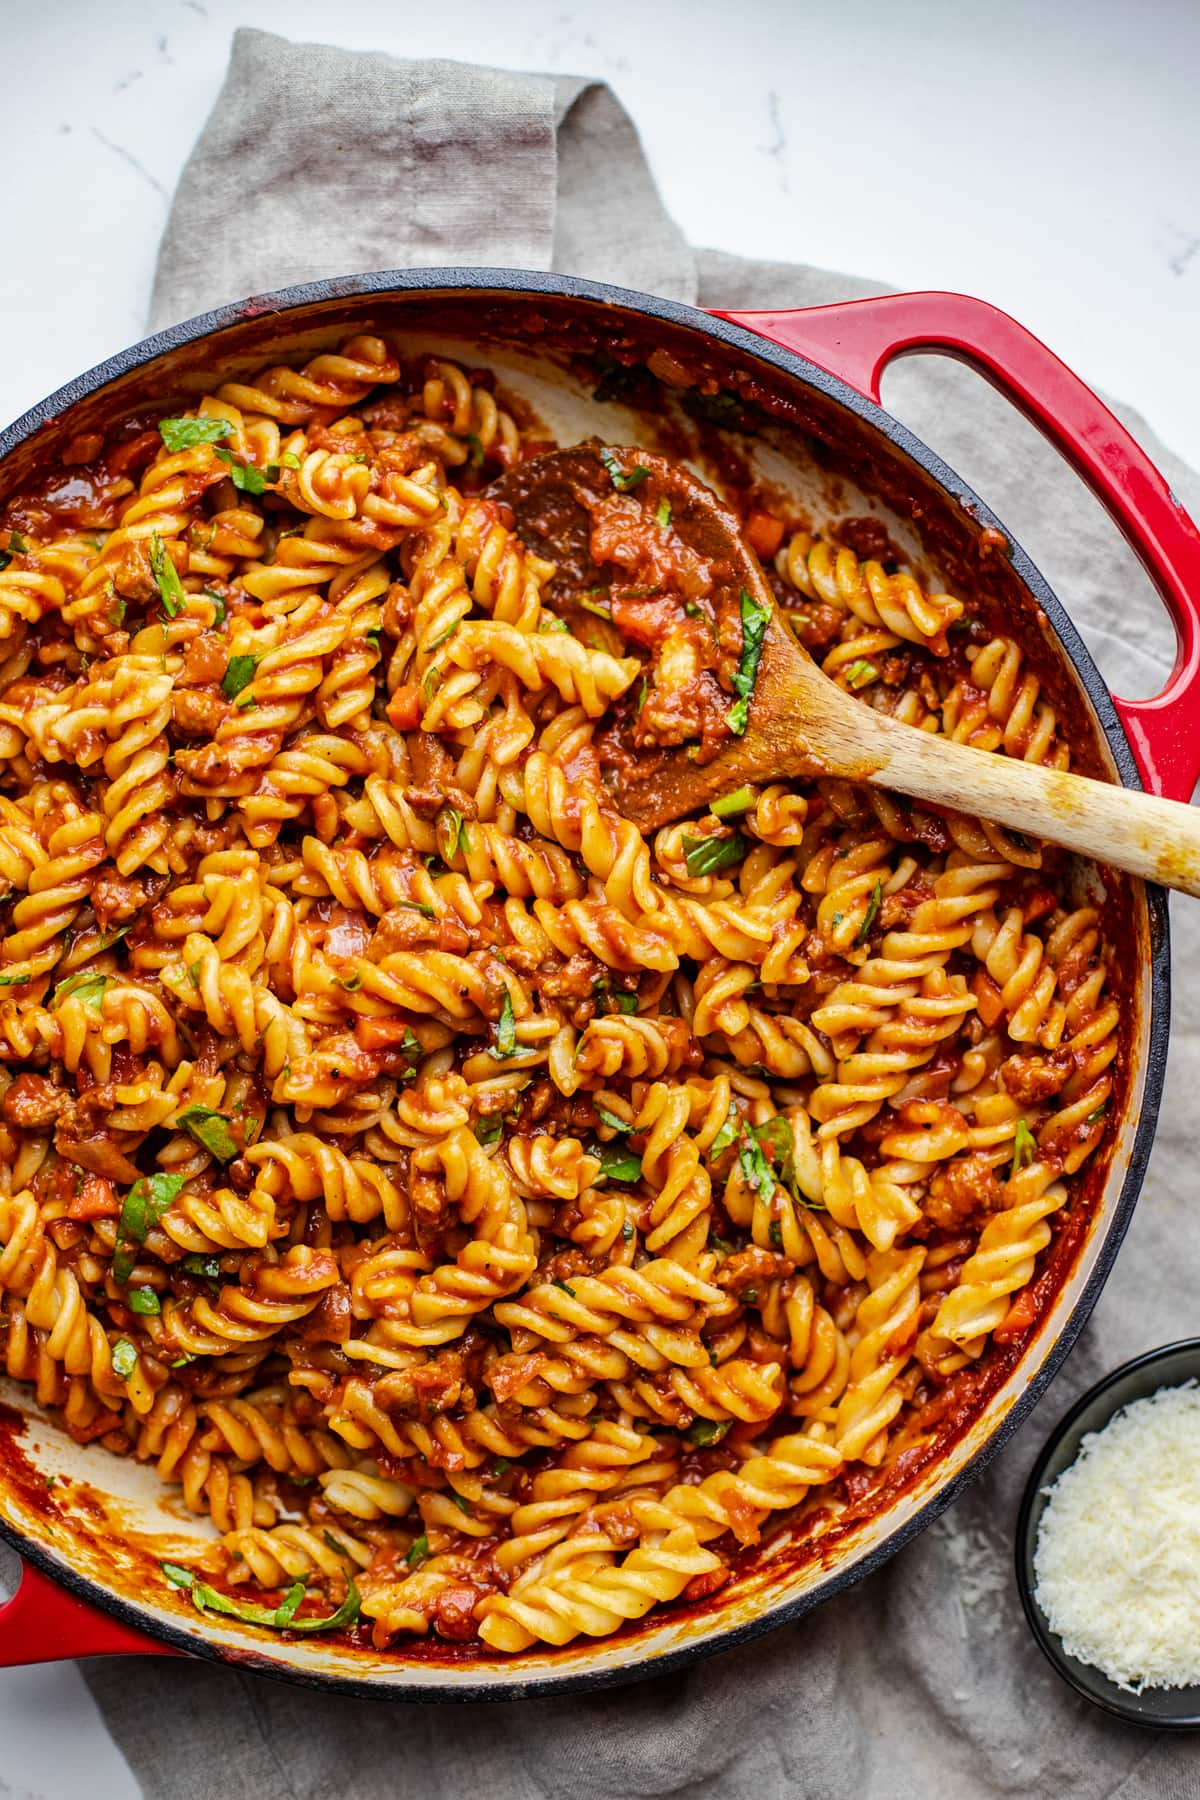 red pan with fusilli noodles in it with a wooden spoon.